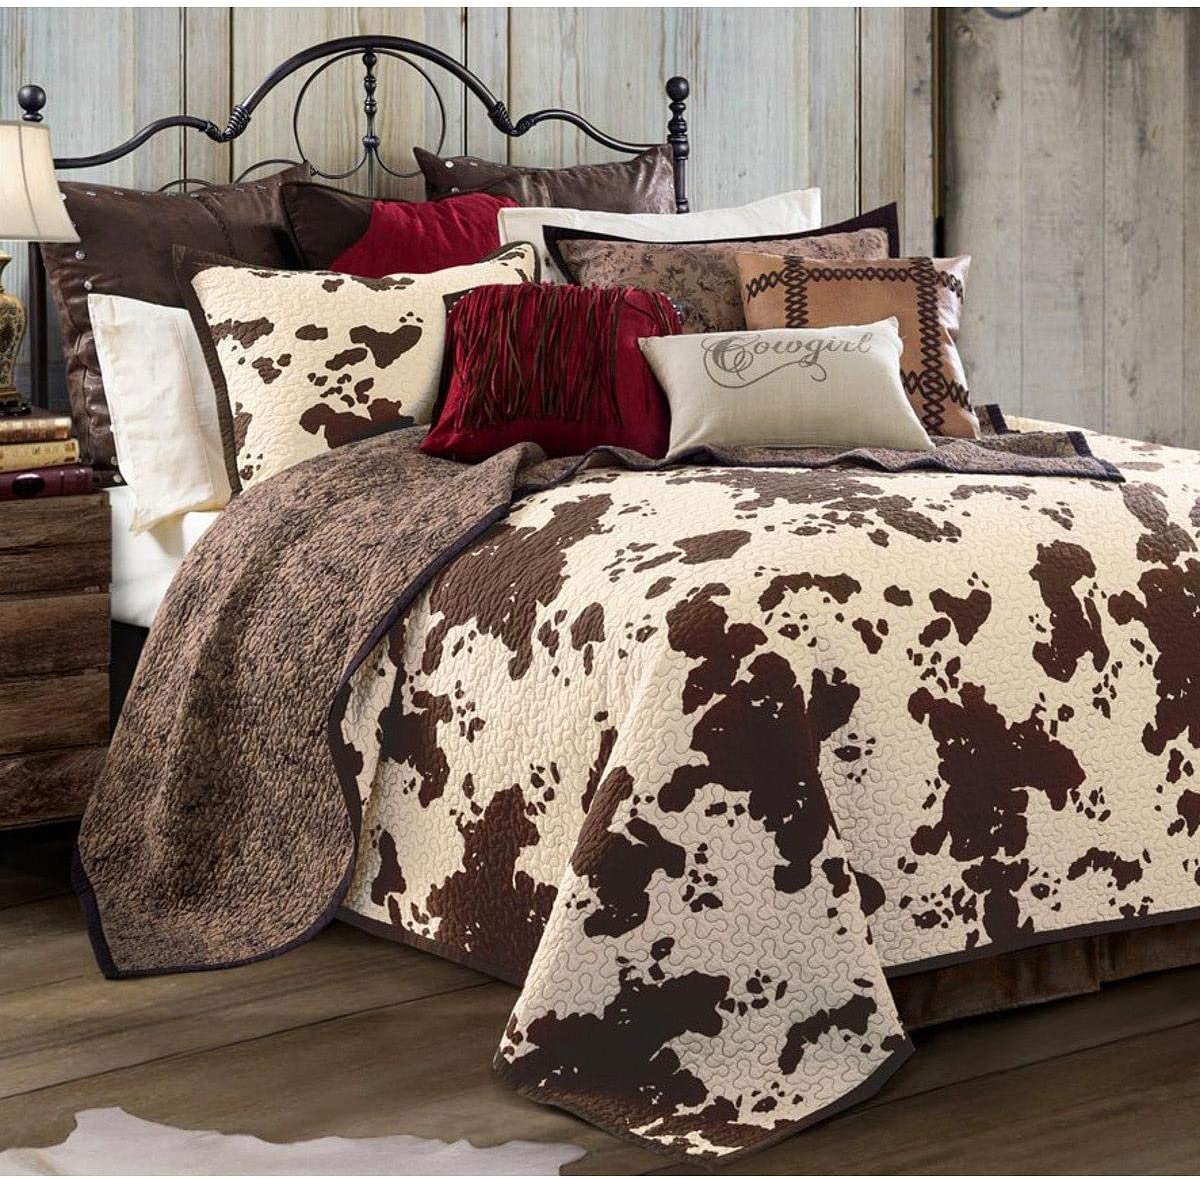 3-PC Elsa Cowhide Cow Print Quilt Set, King